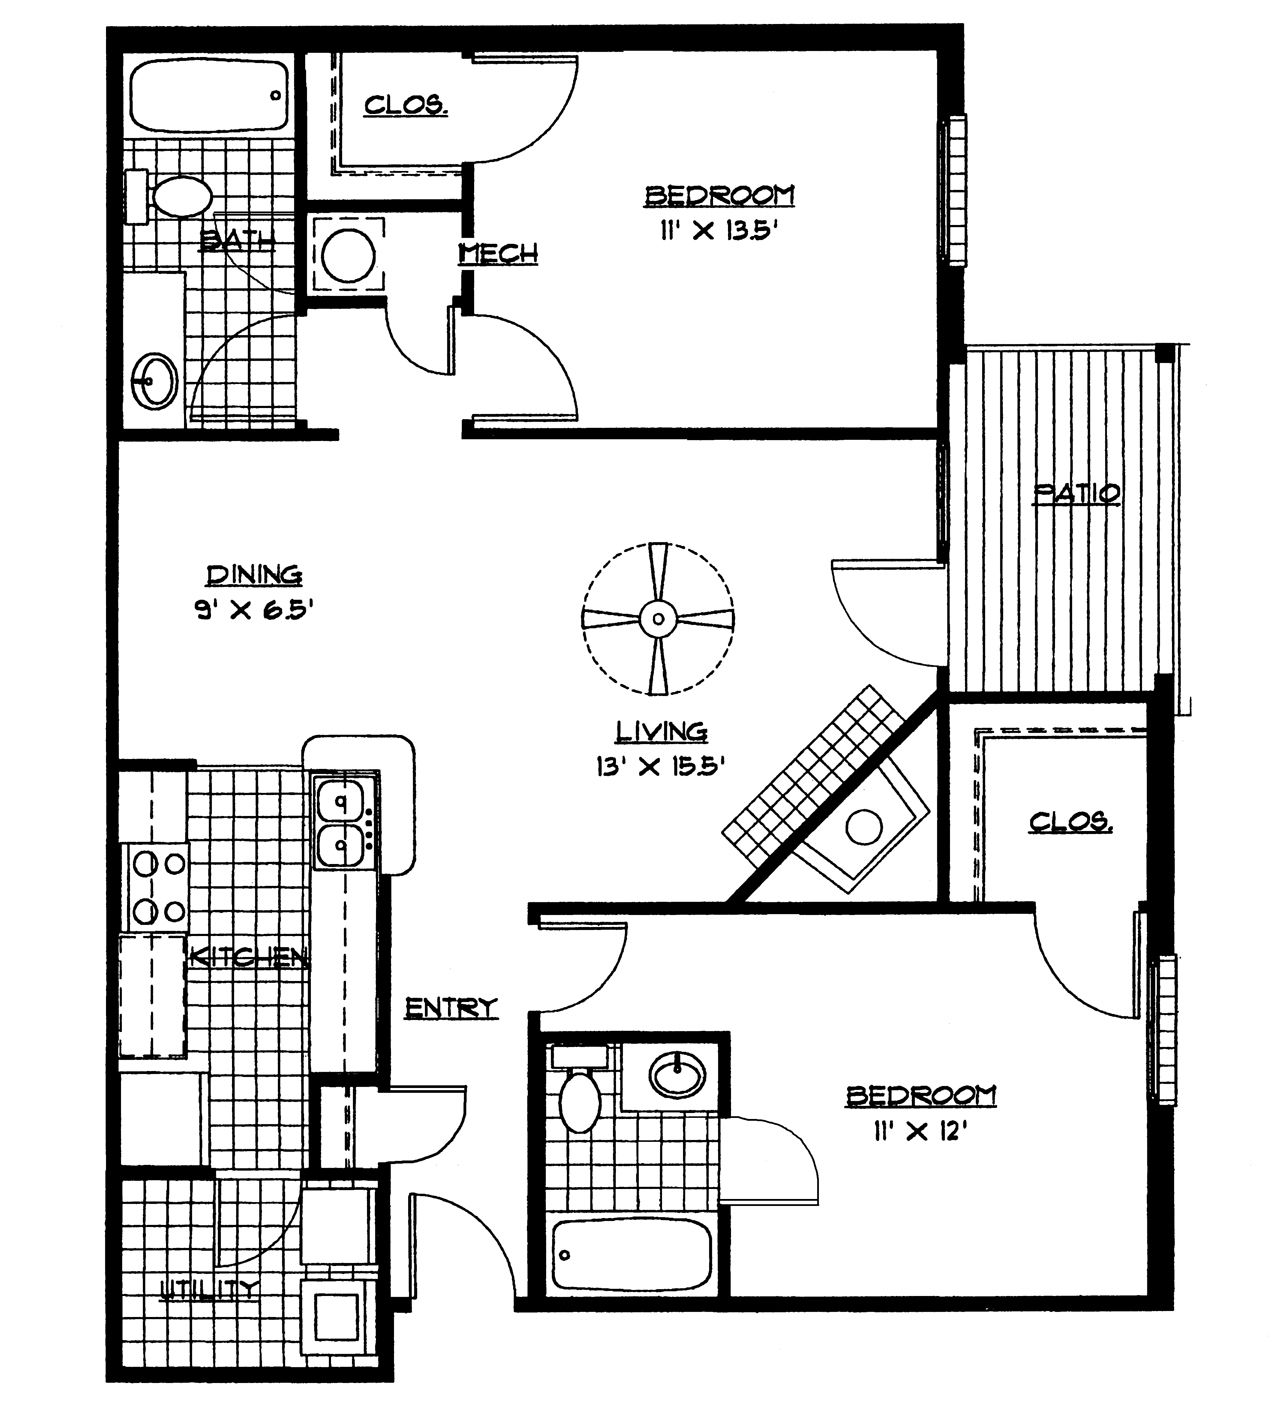 Small house floor plans 2 bedrooms bedroom floor plan House plan design free download